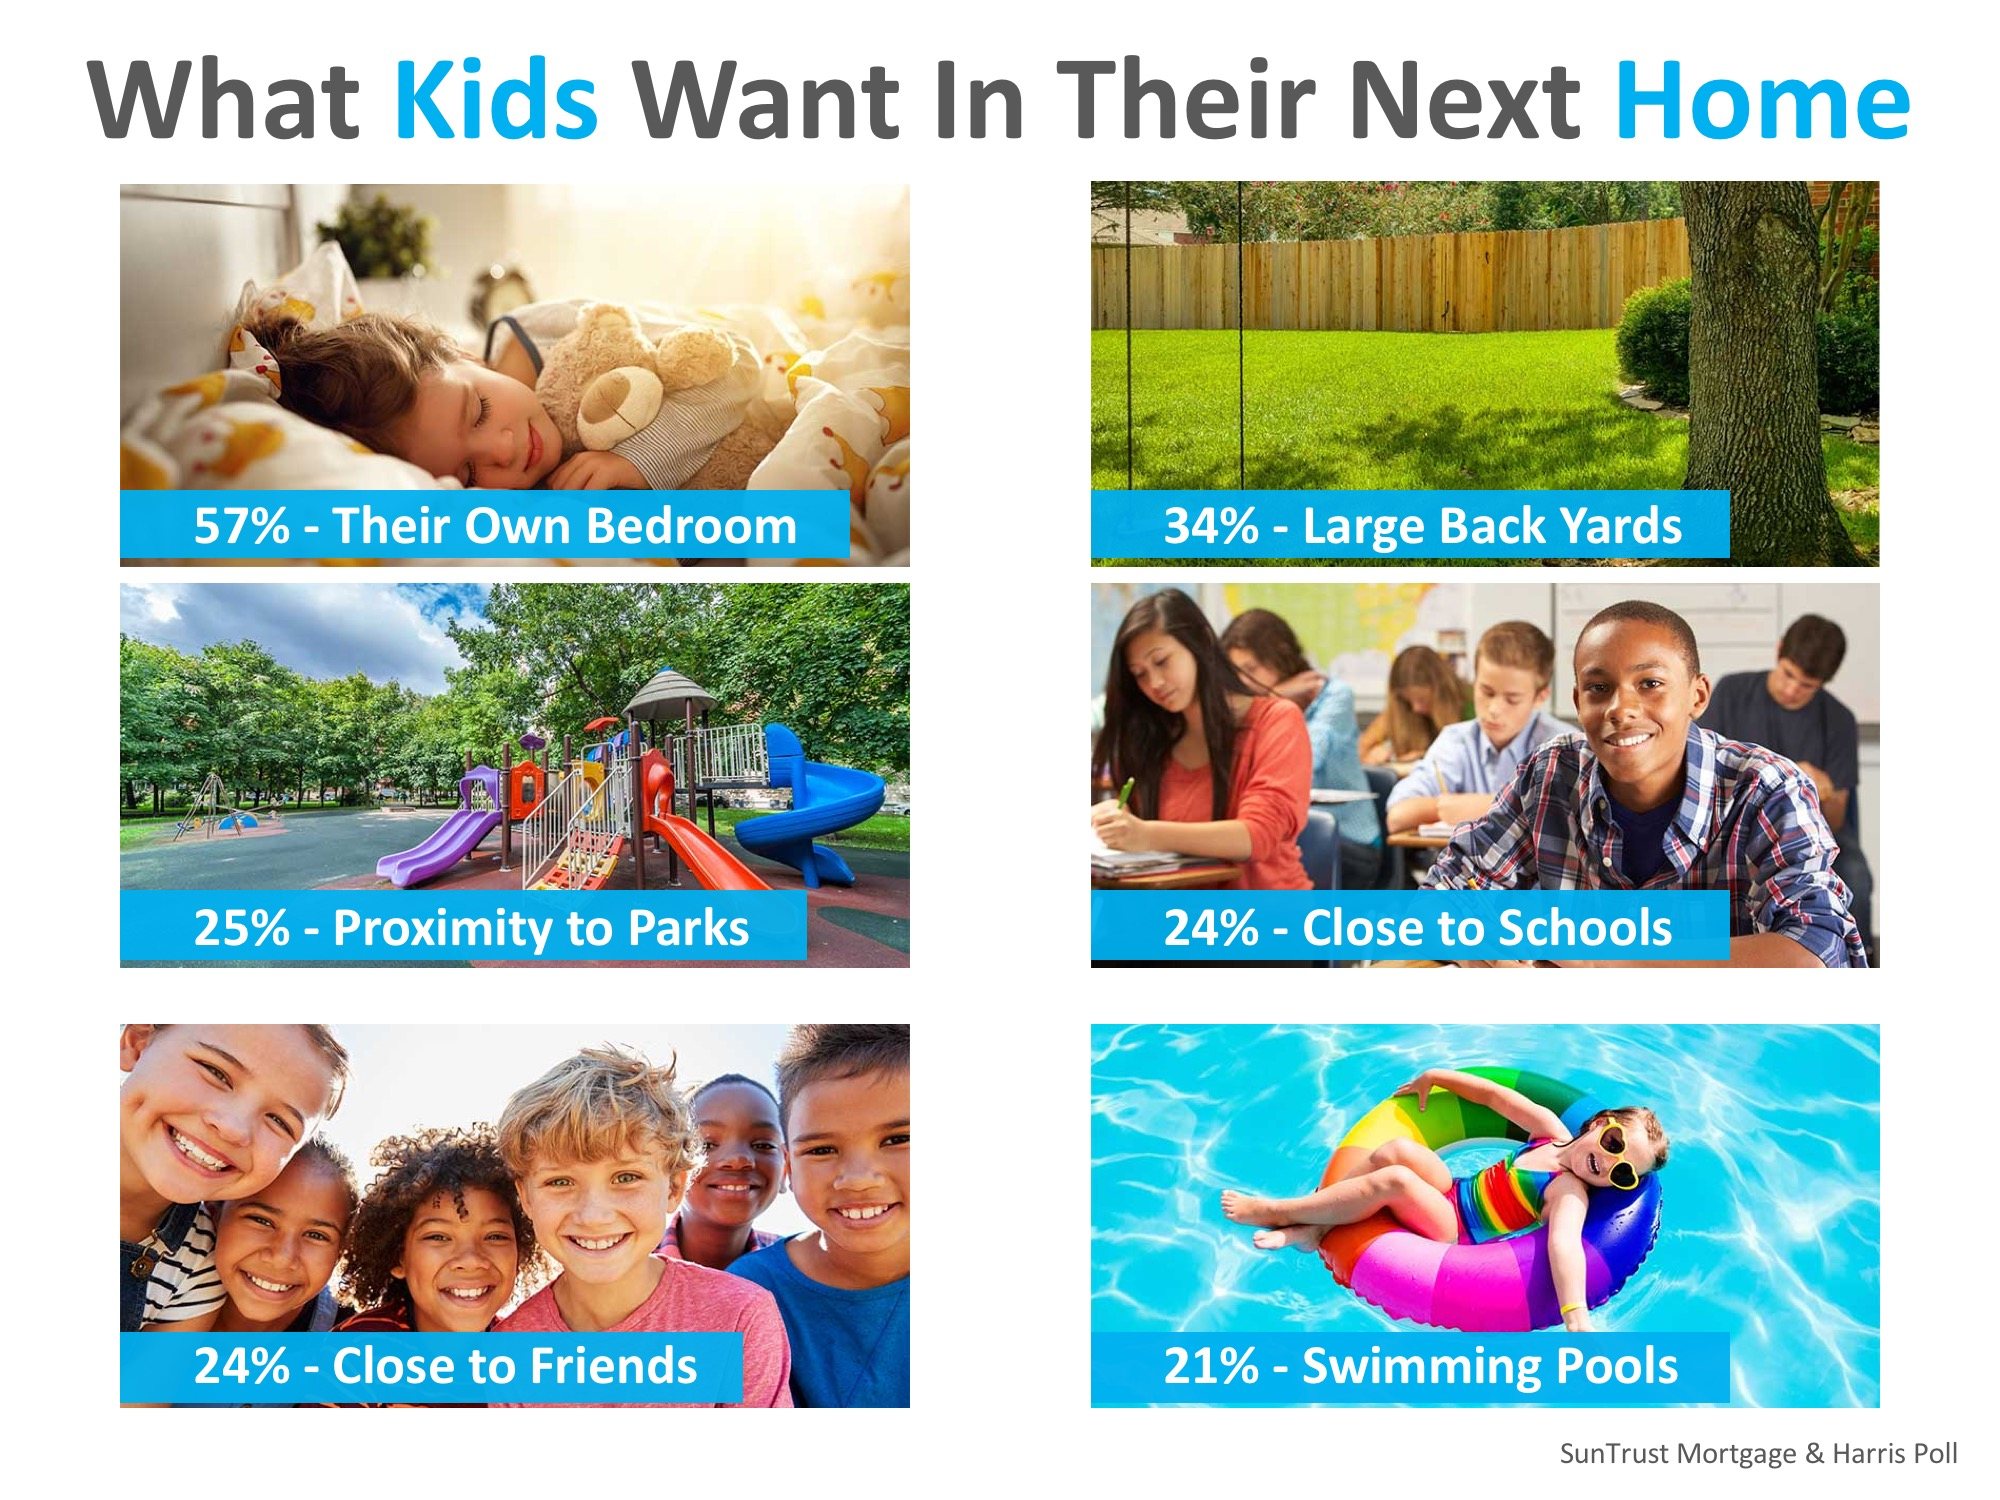 Buy My Home in DC | Parents Say Kids' Opinions Matter Big When Buying a Home